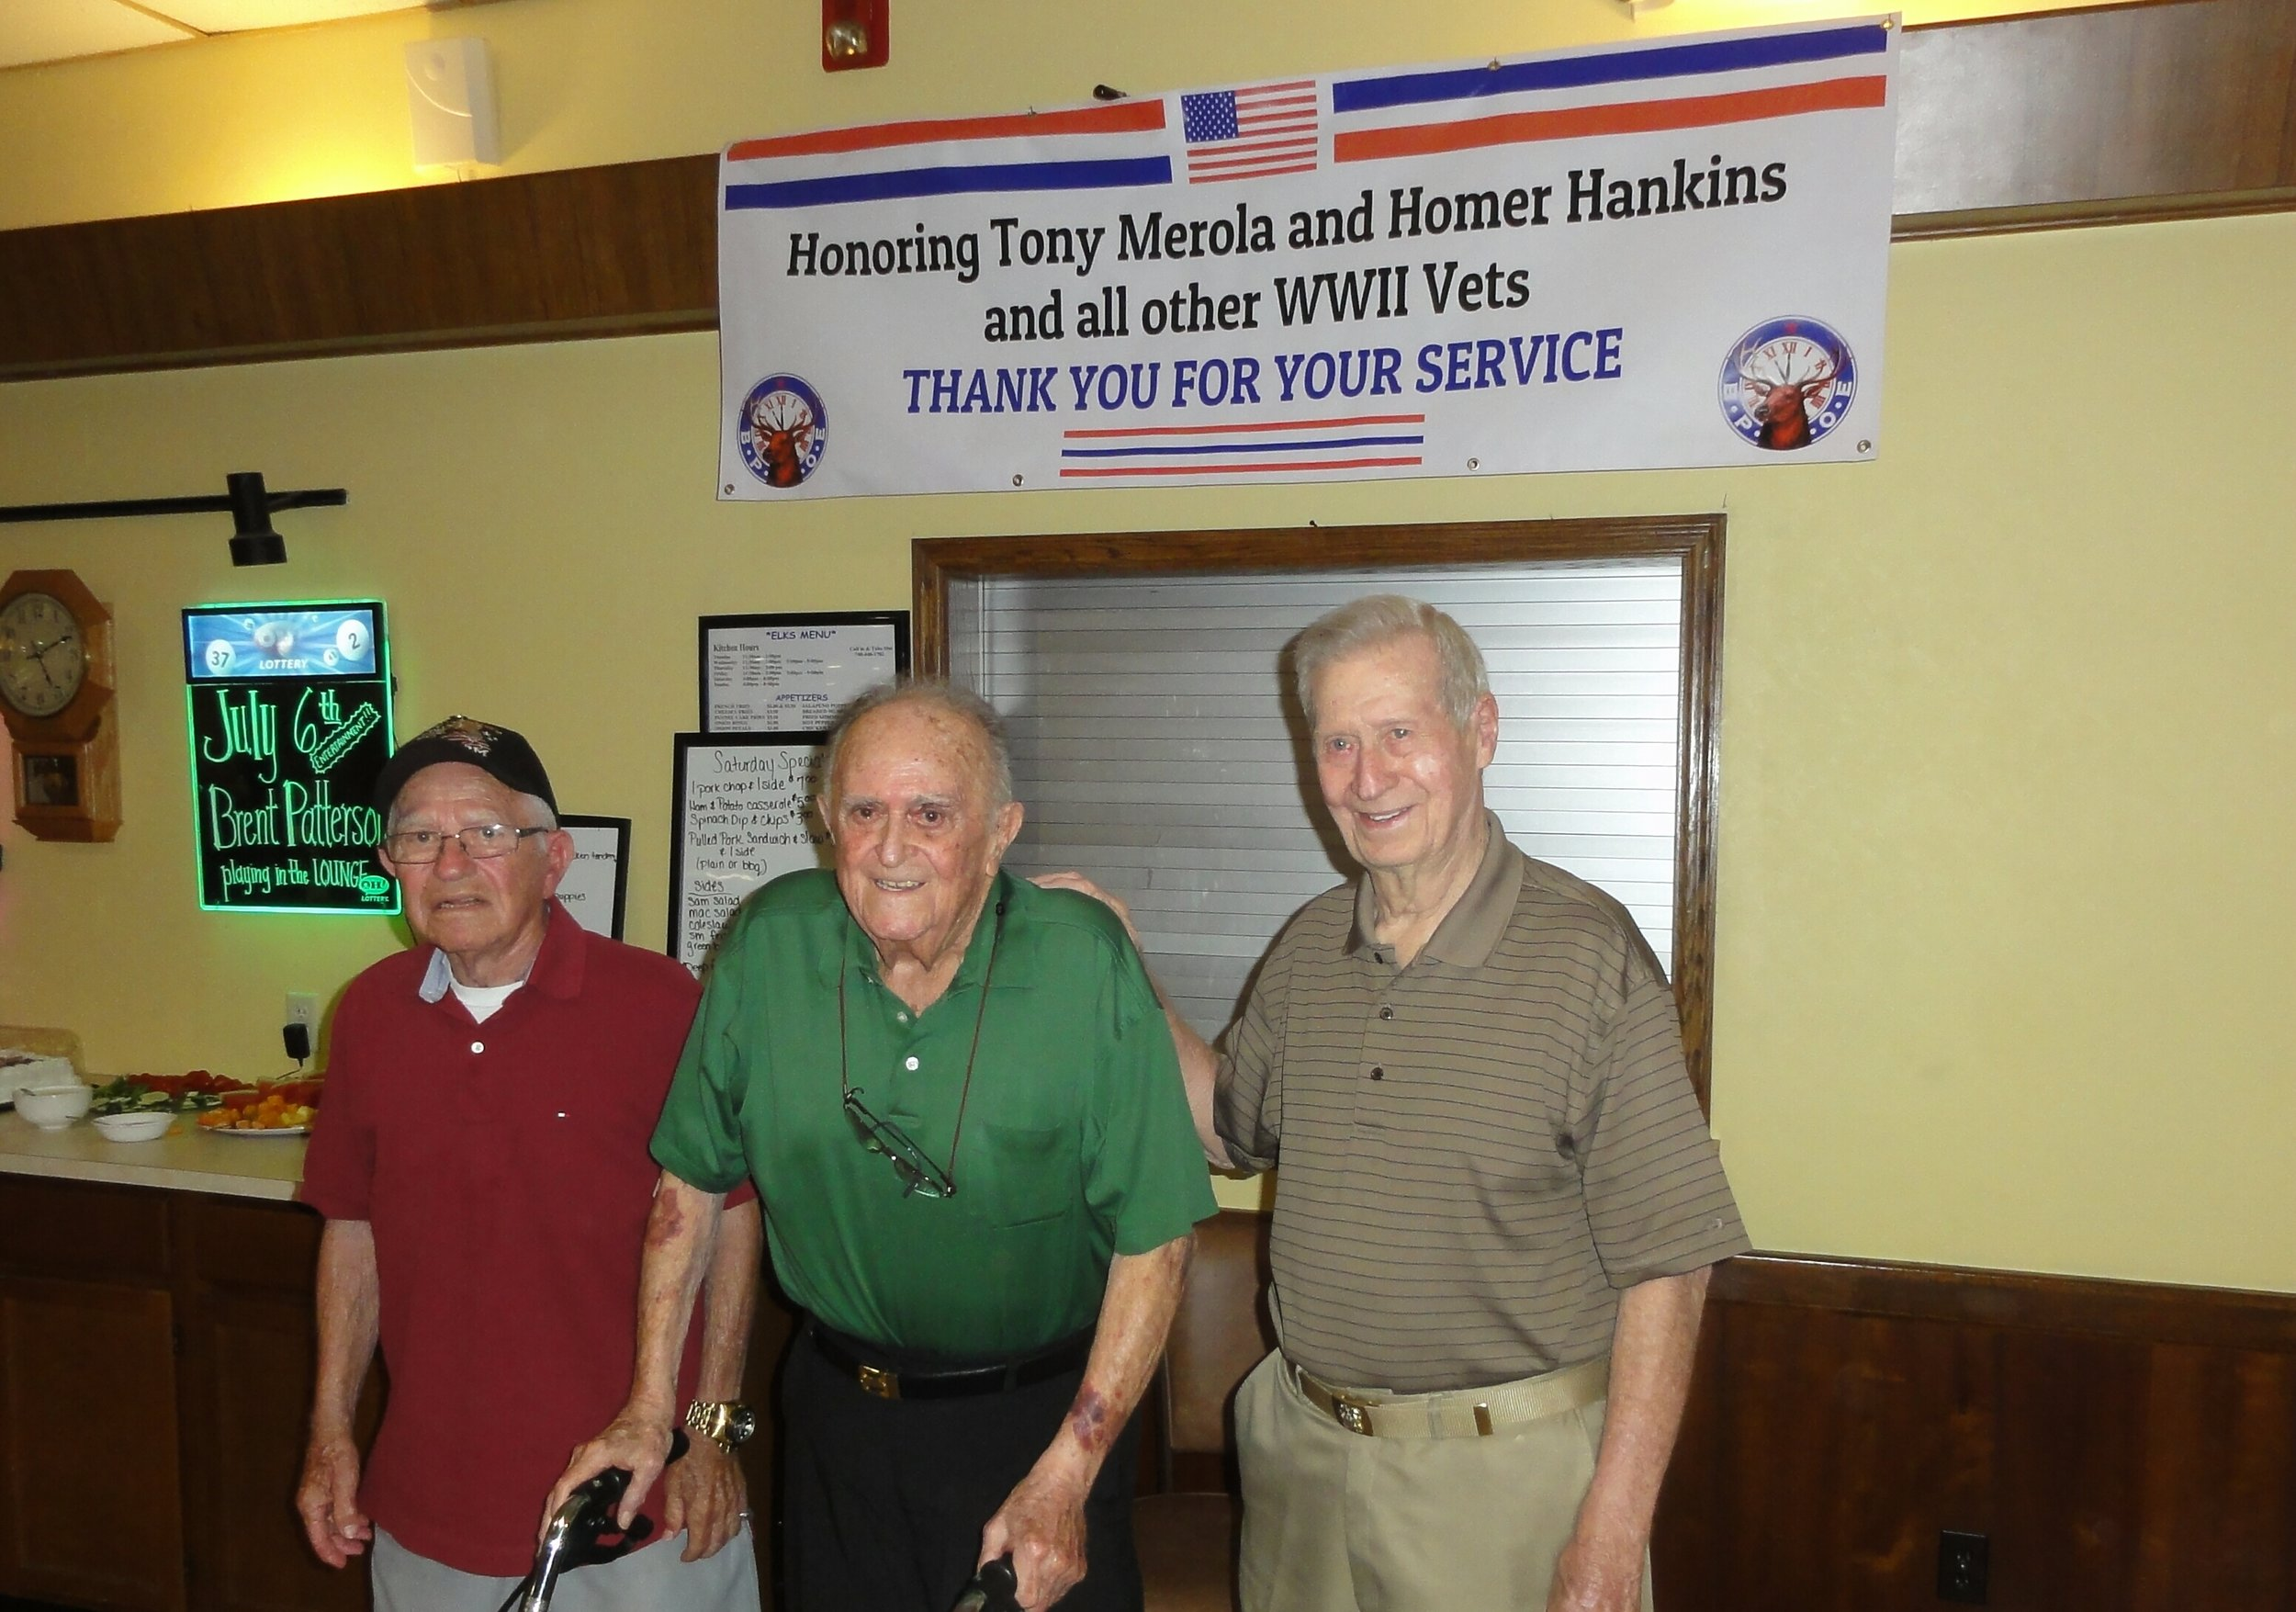 Pictured are Tony Merola, 94, Jim Betz, 93, and Homer Hankins, 93.